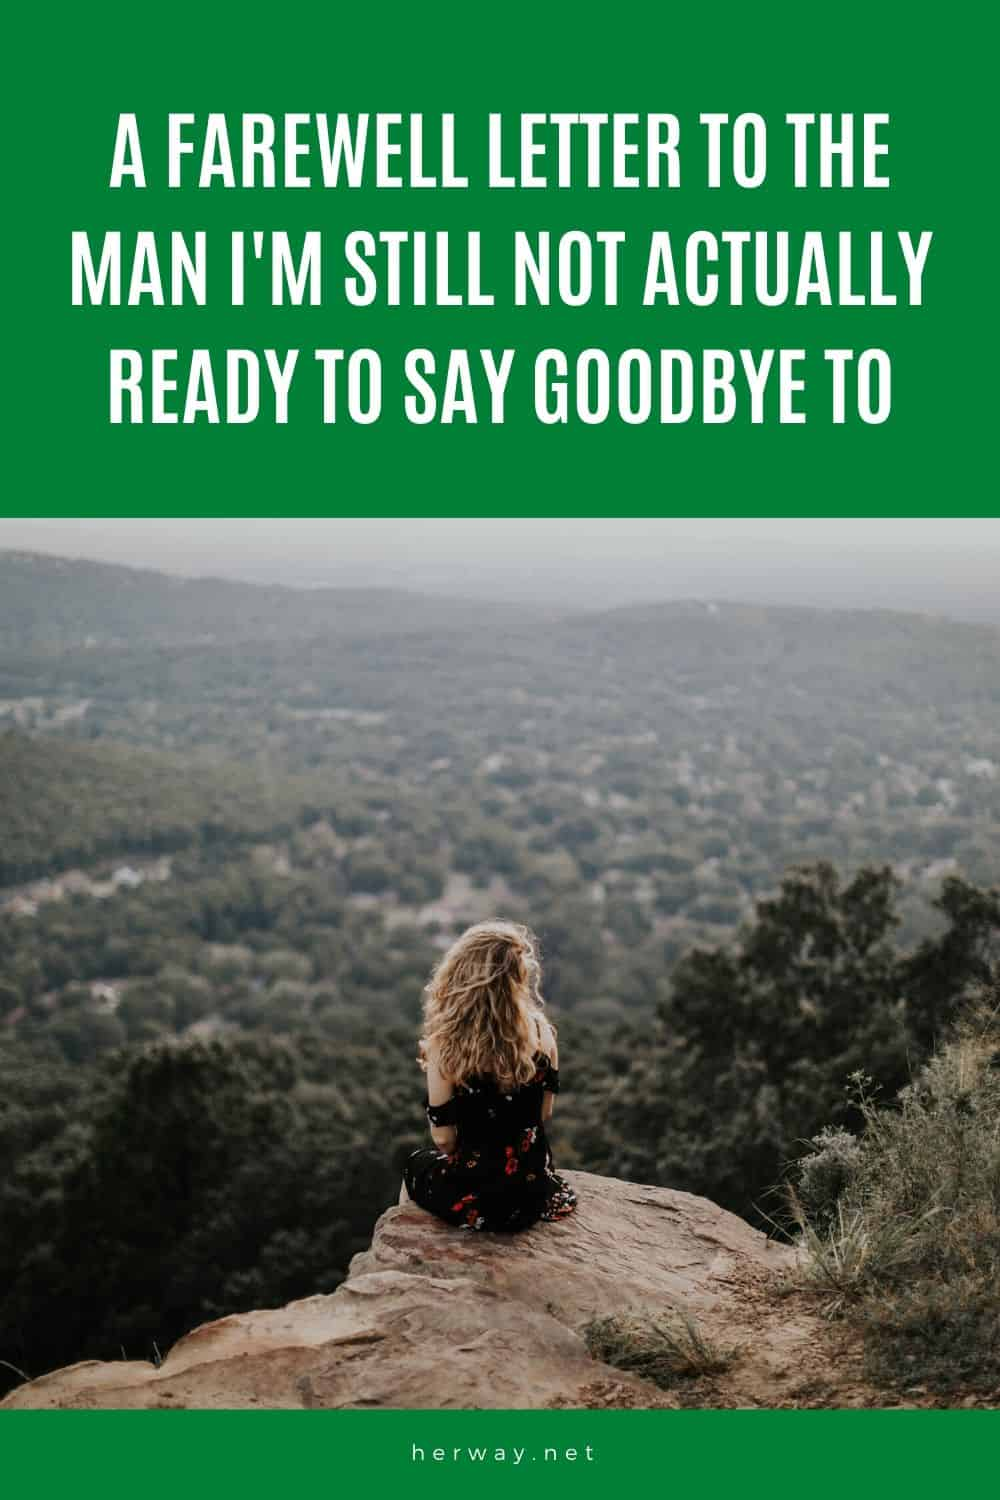 A Farewell Letter To The Man I'm Still Not Actually Ready To Say Goodbye To